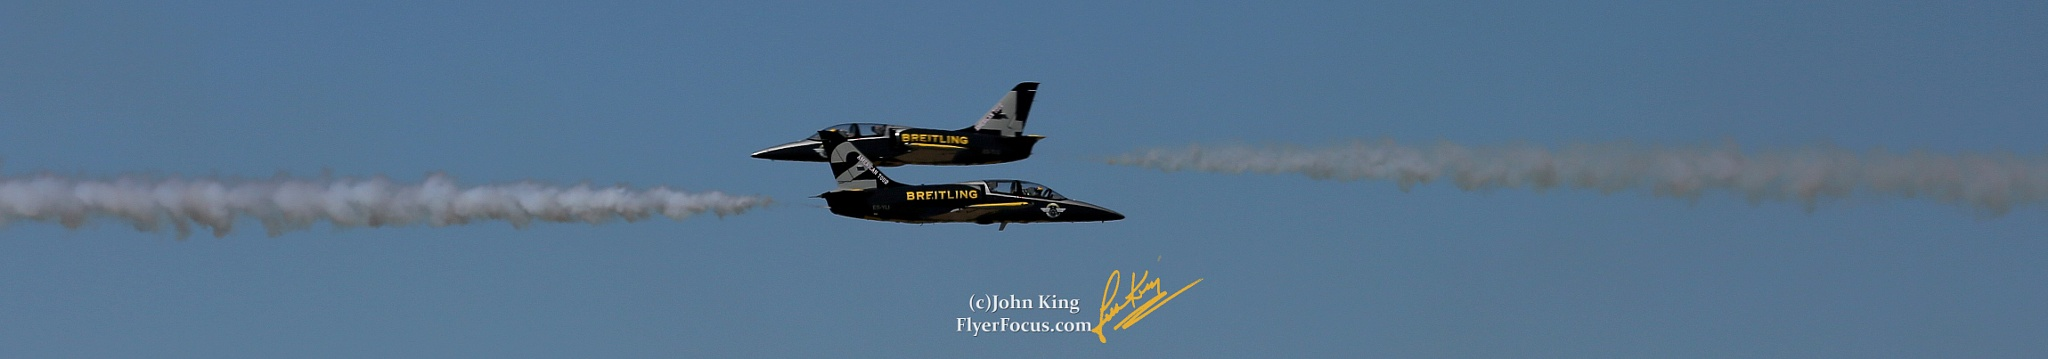 Breitling Convergence at the Reno Are Races. 900+ mph closure by John King (ig: FlyerFocus)